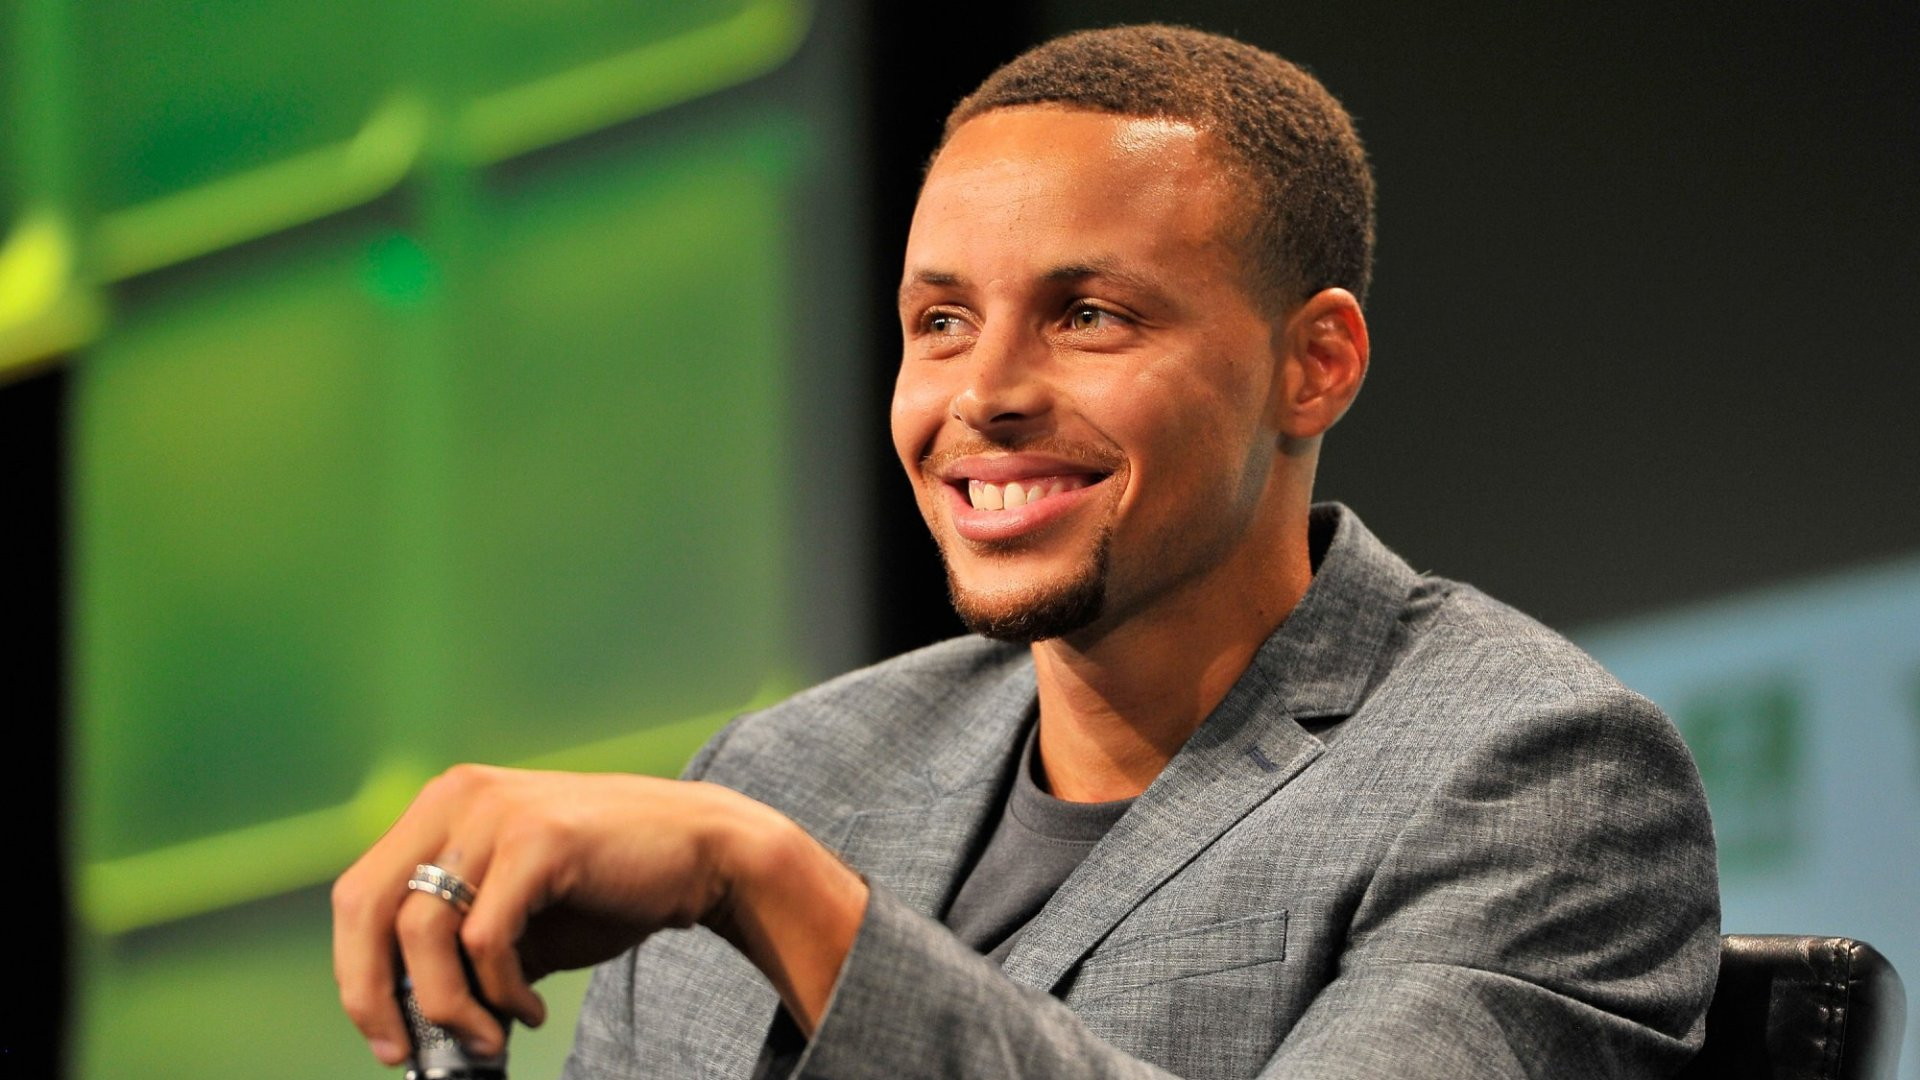 Stephen Curry Said This One Thing Sets Him Up for Success (It Will Make the Difference in Your Career)